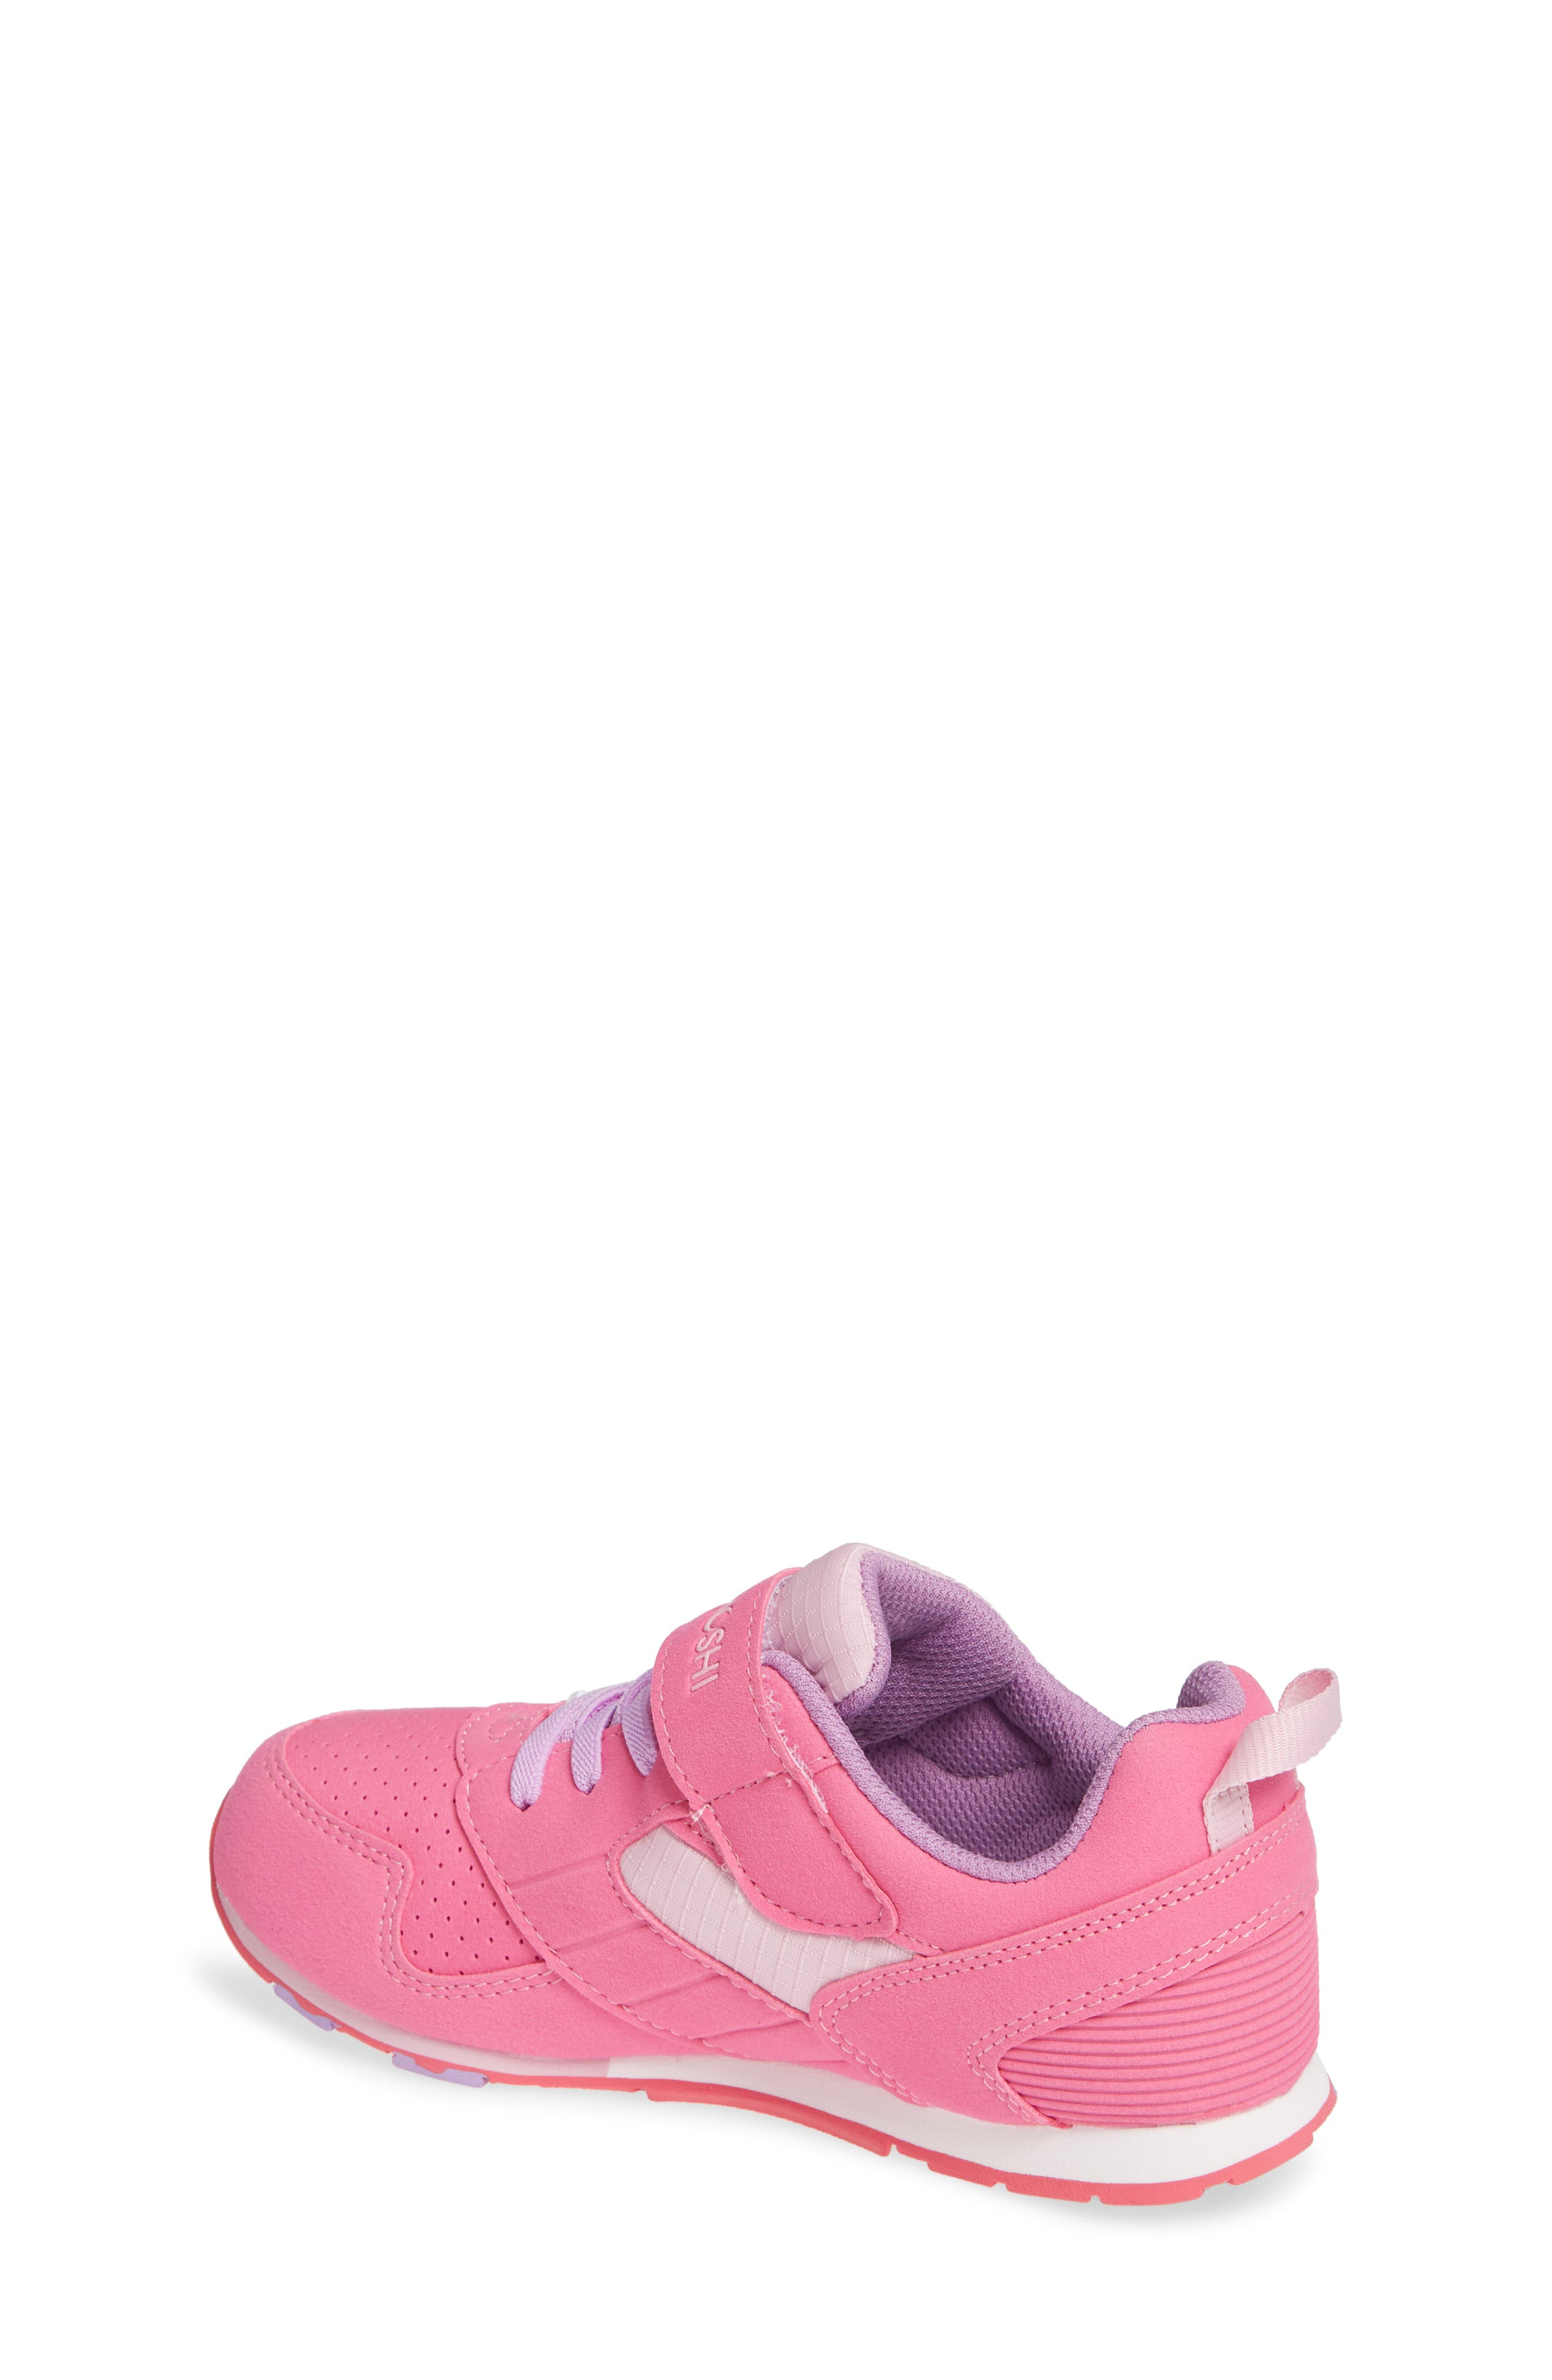 Racer Washable Sneaker,                             Alternate thumbnail 2, color,                             FUCHSIA/ PINK